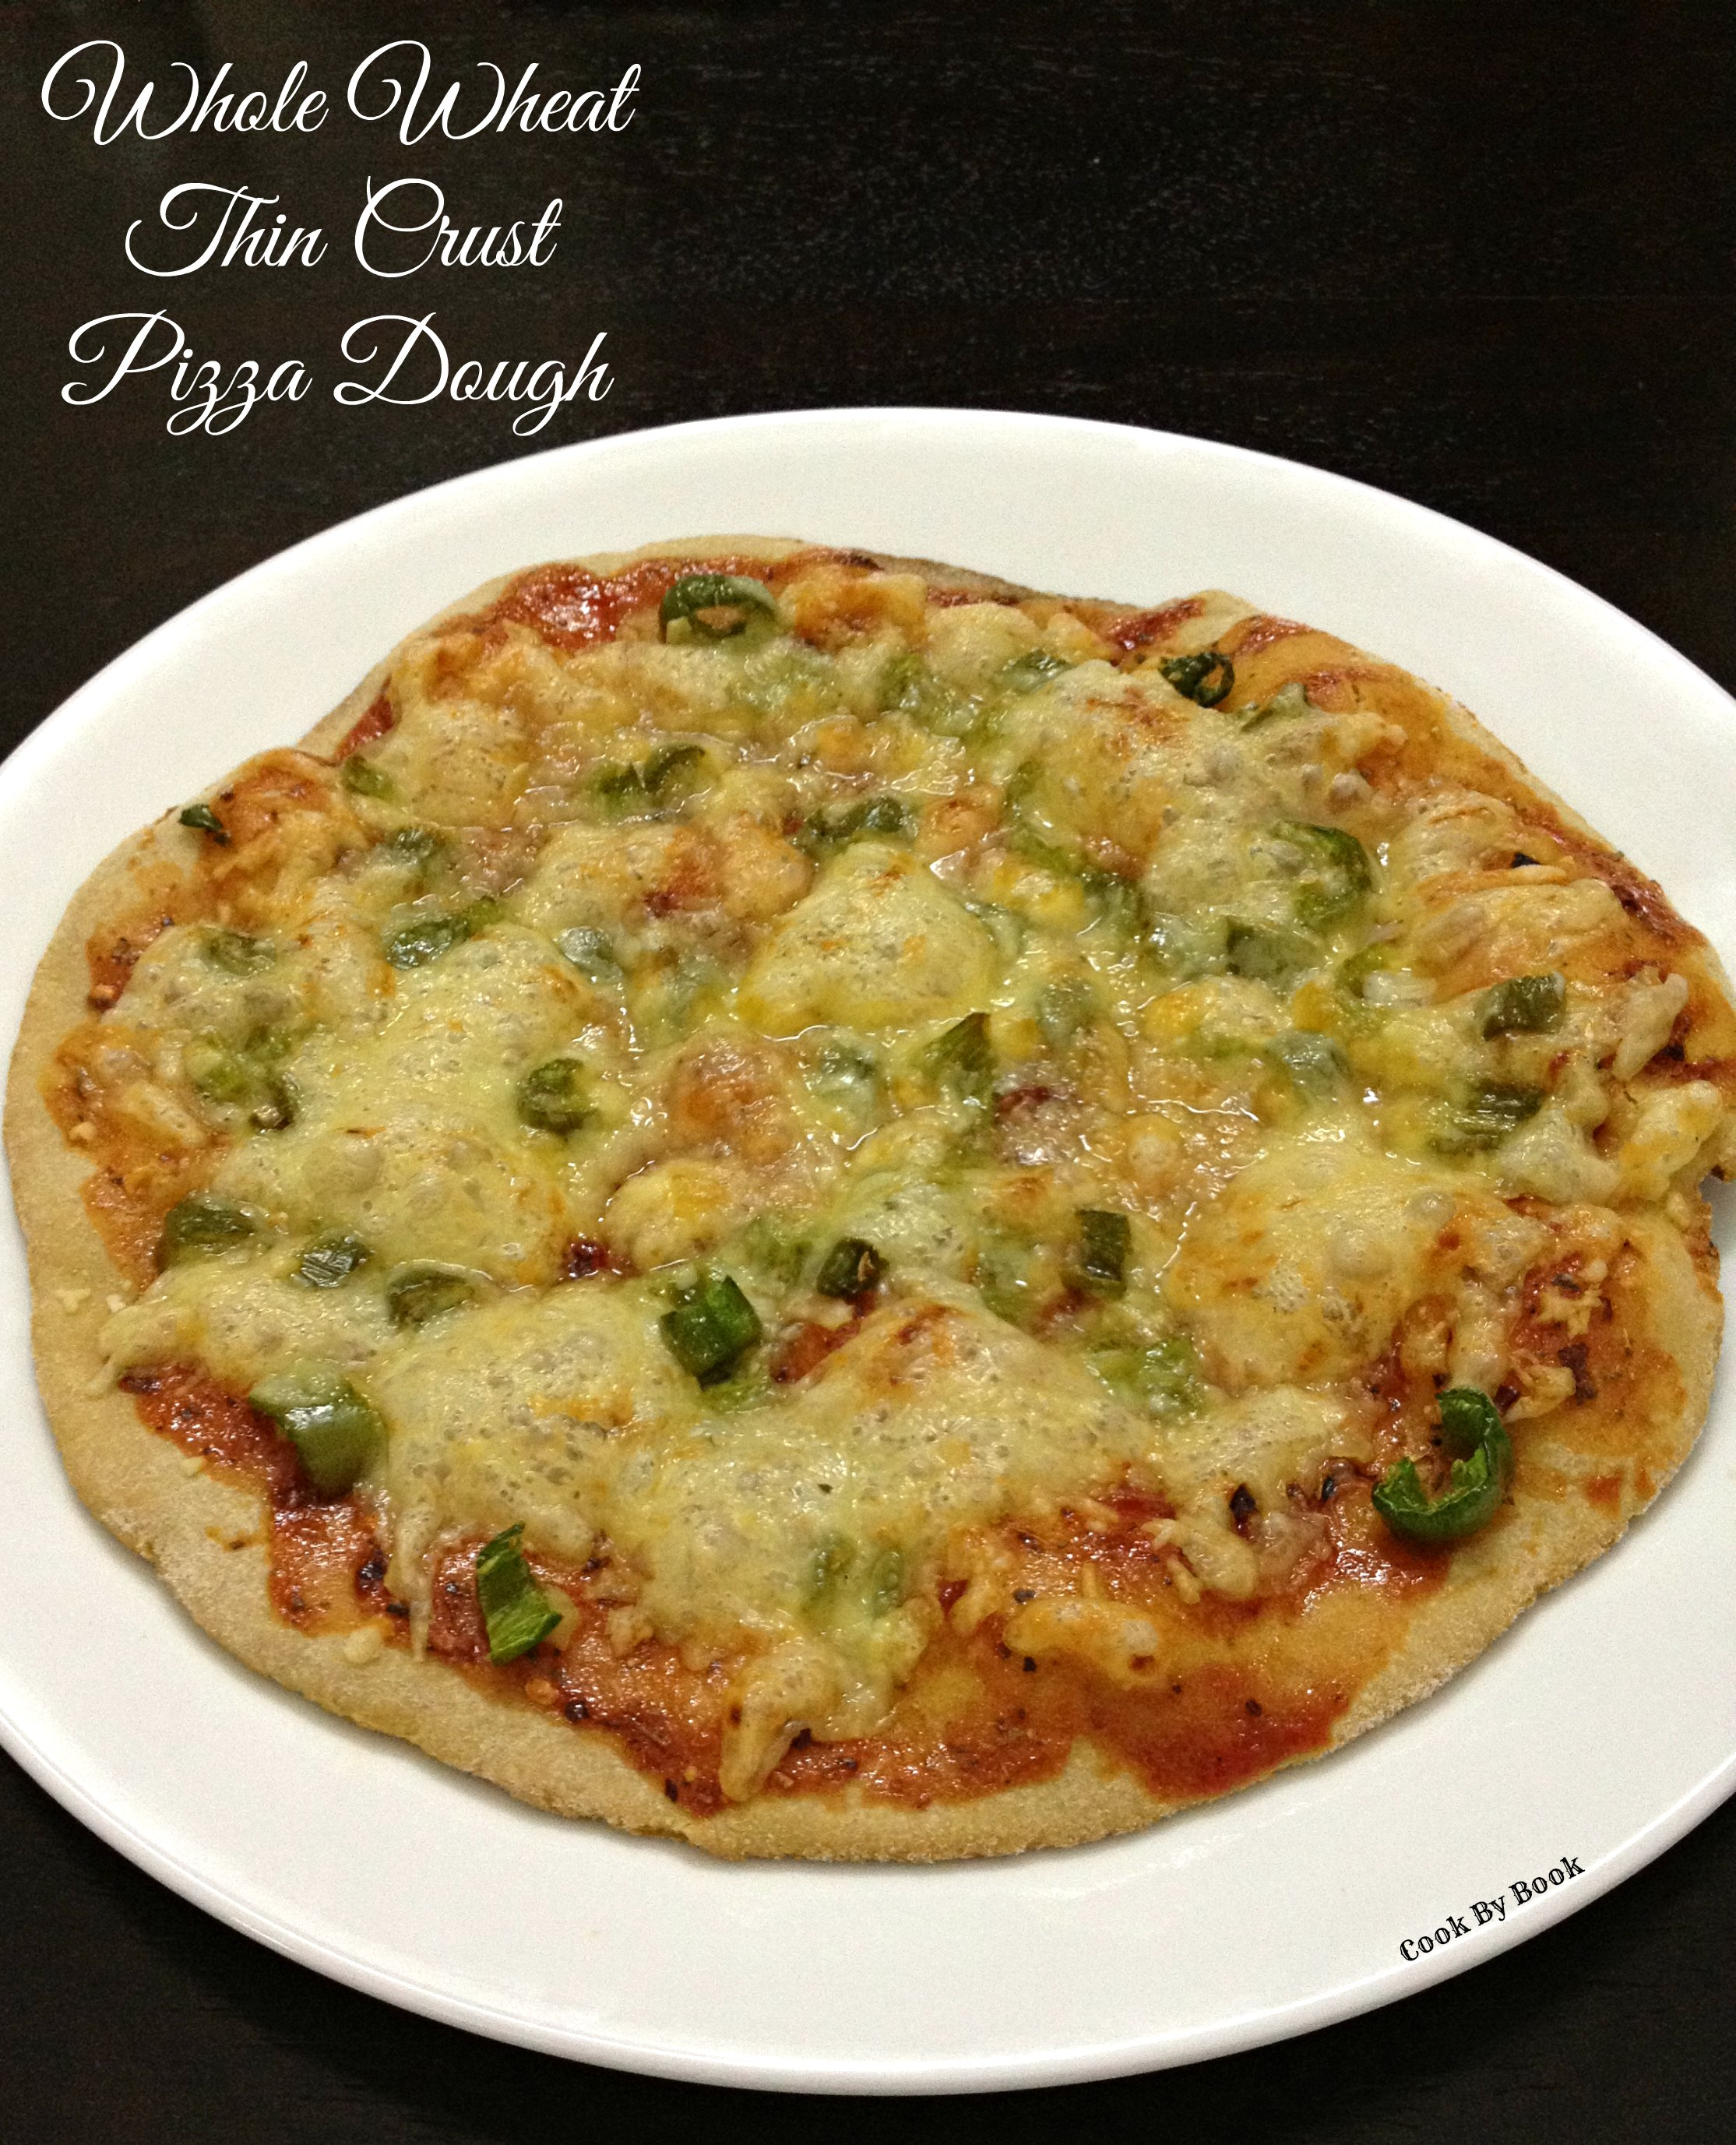 digiorno pizza cooking instructions thin crust